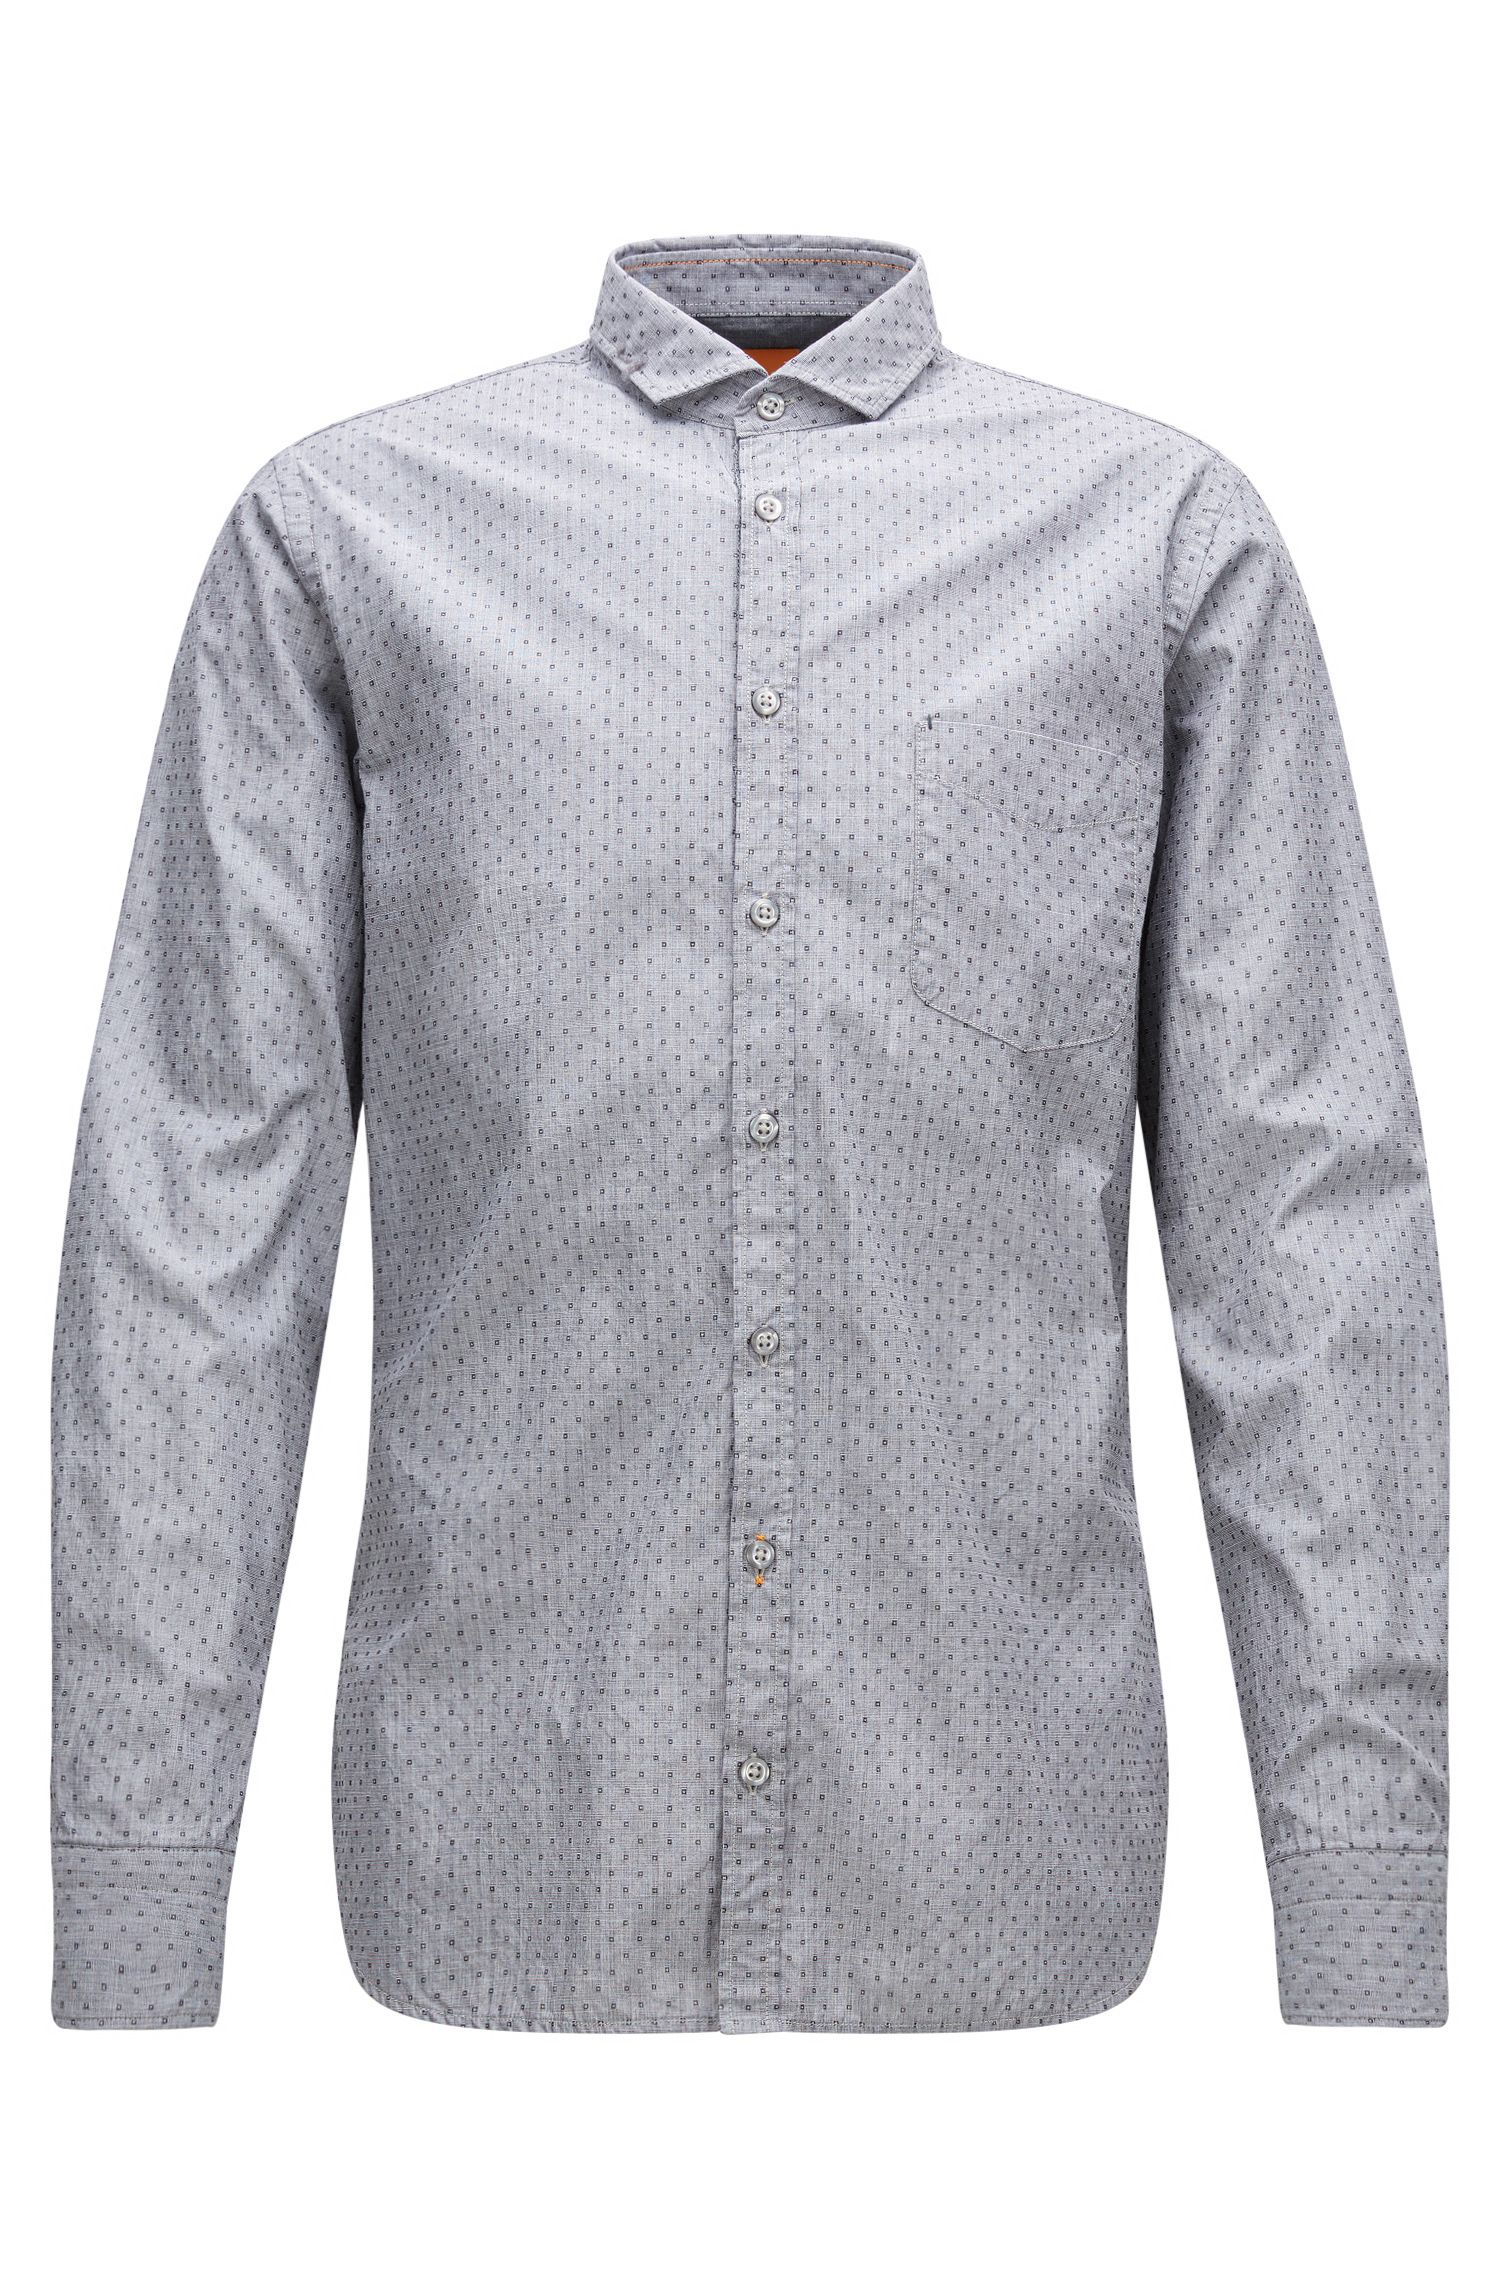 'Cattitude' | Slim Fit, End-on-End Patterned Cotton Button Down Shirt